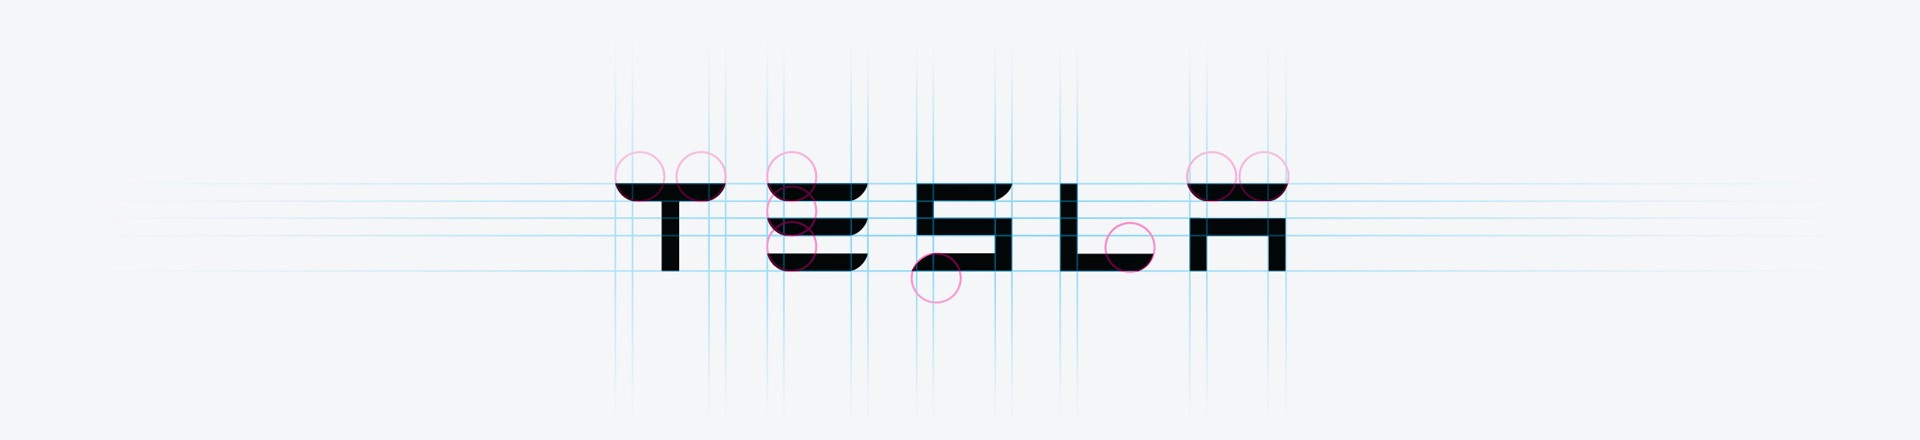 Logos of Elon Musk's Brands: Tesla, SpaceX and The Boring